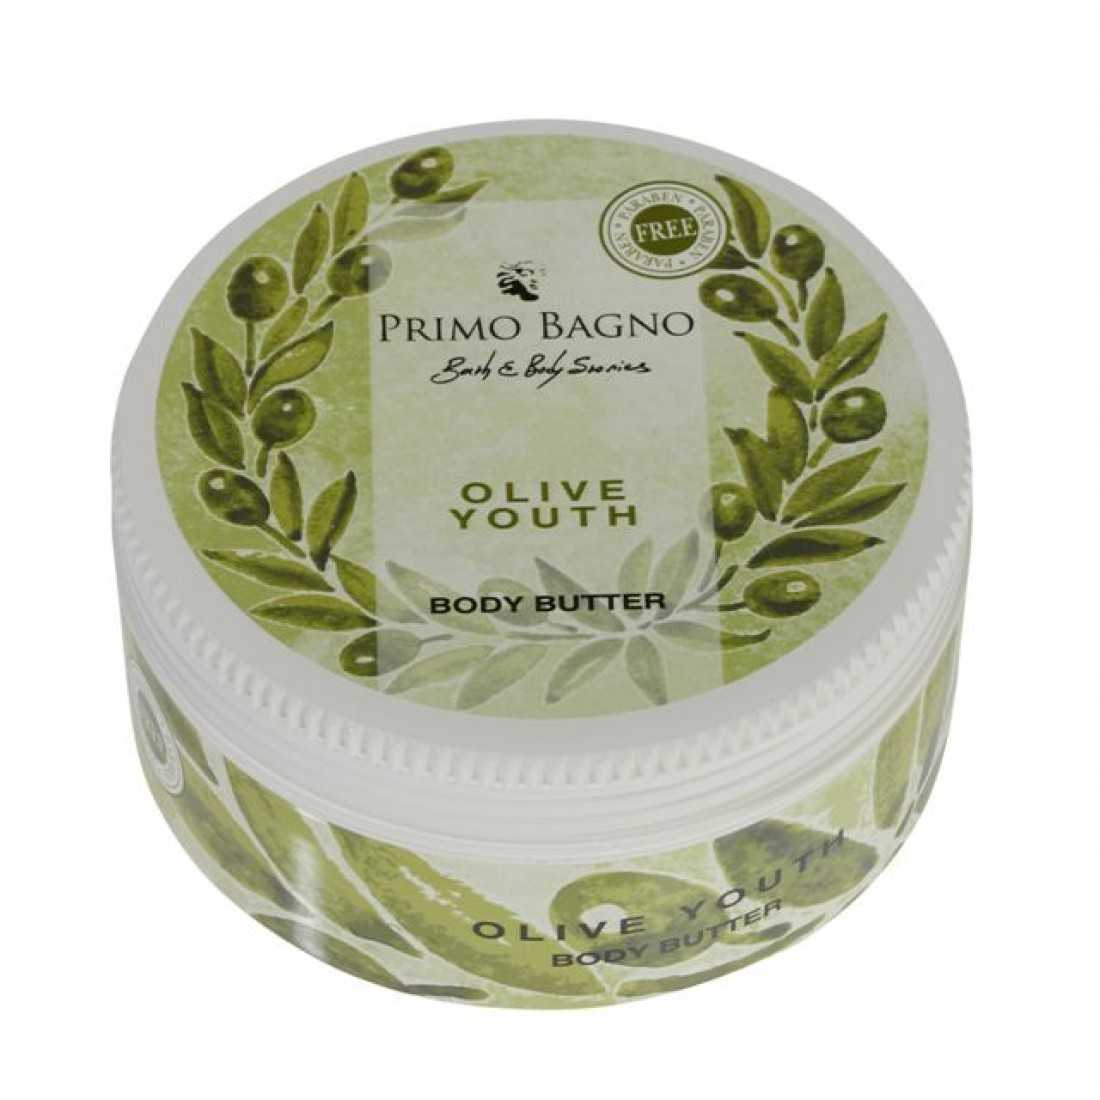 Primo Bagno - Body Butter Olive Youth